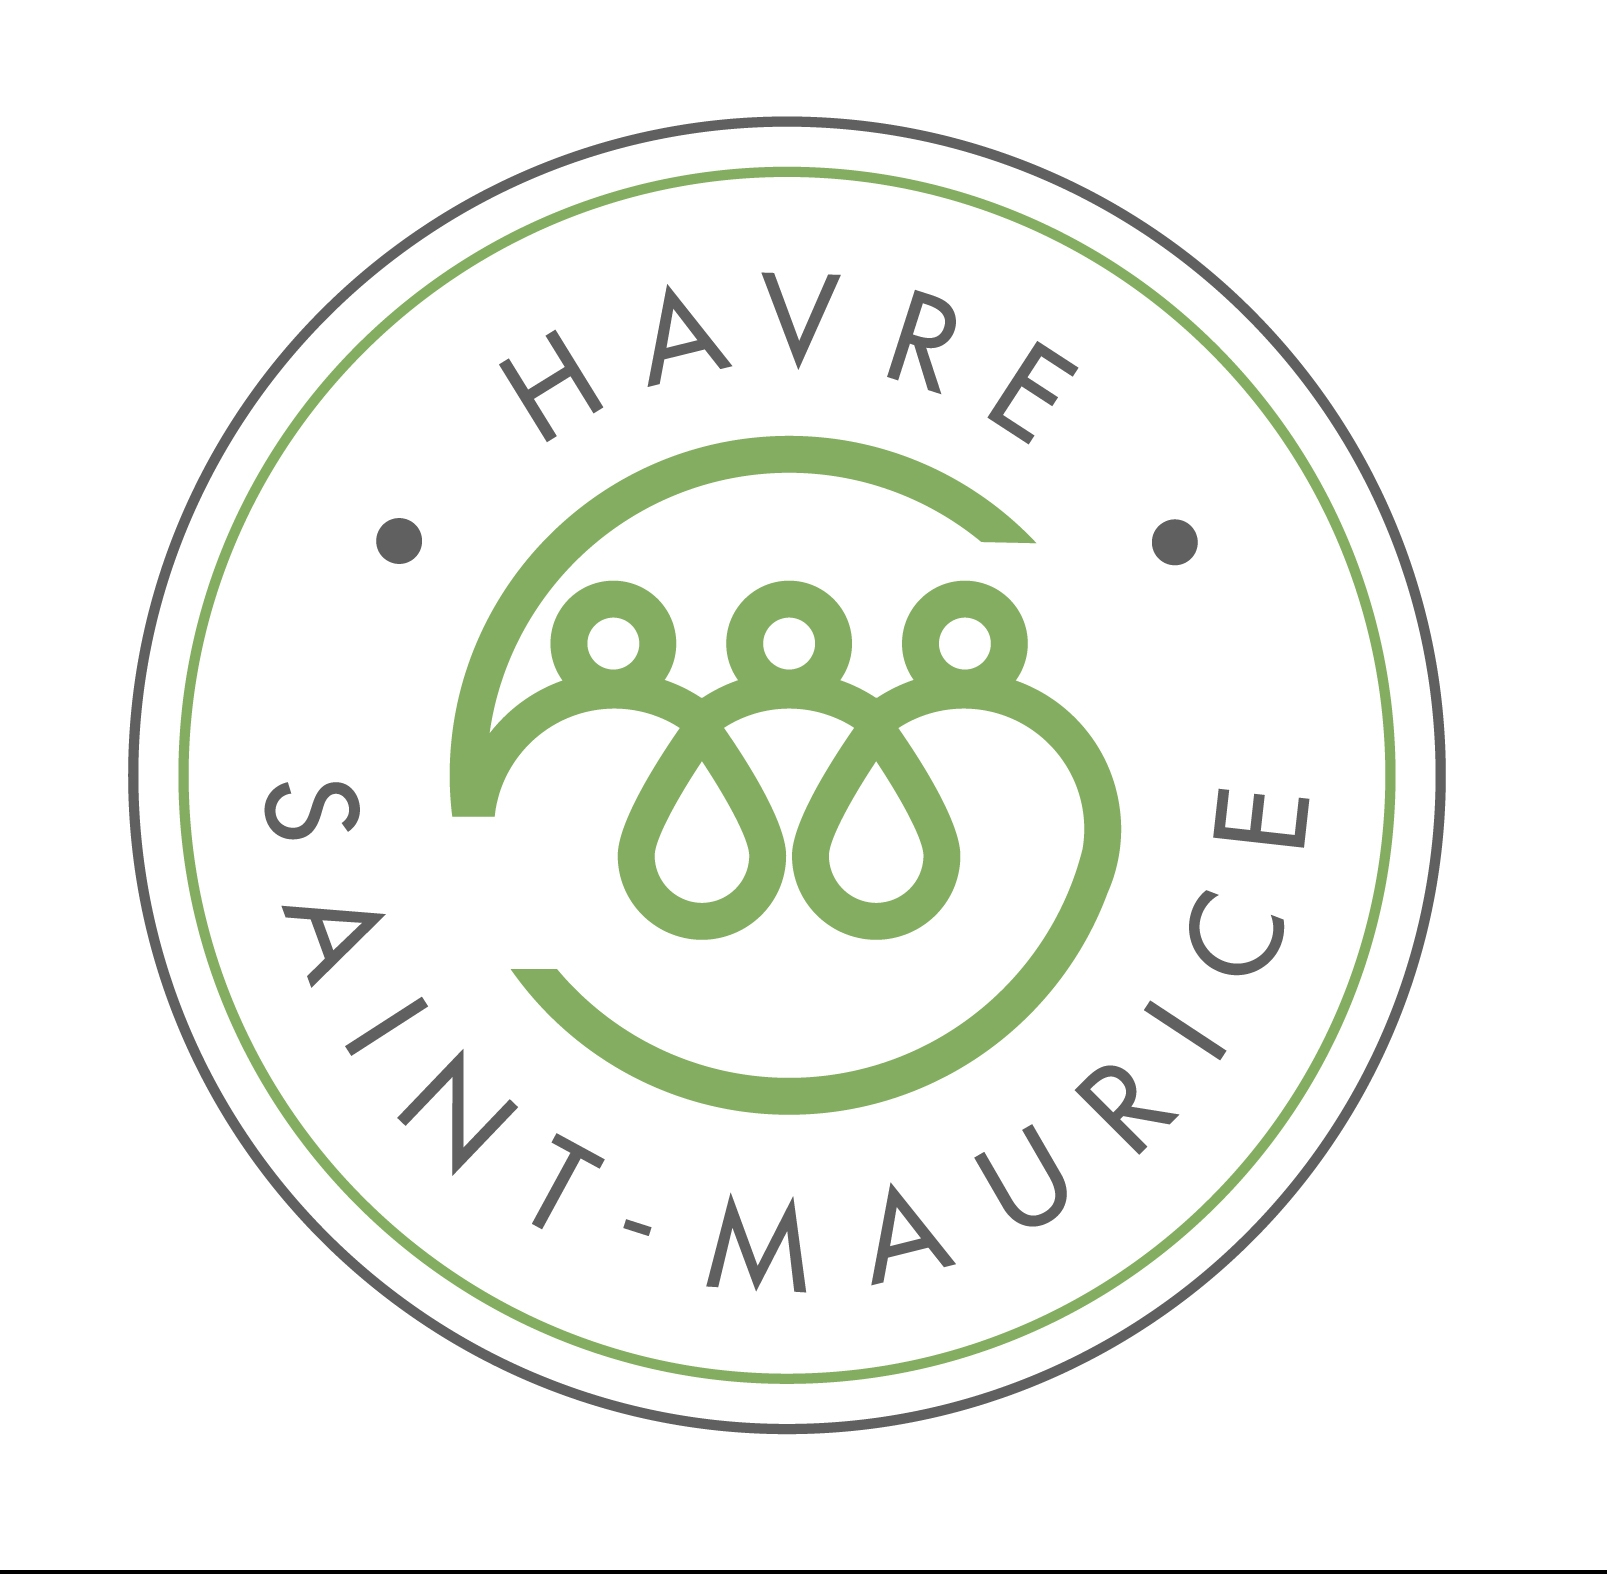 Le Havre St-Maurice